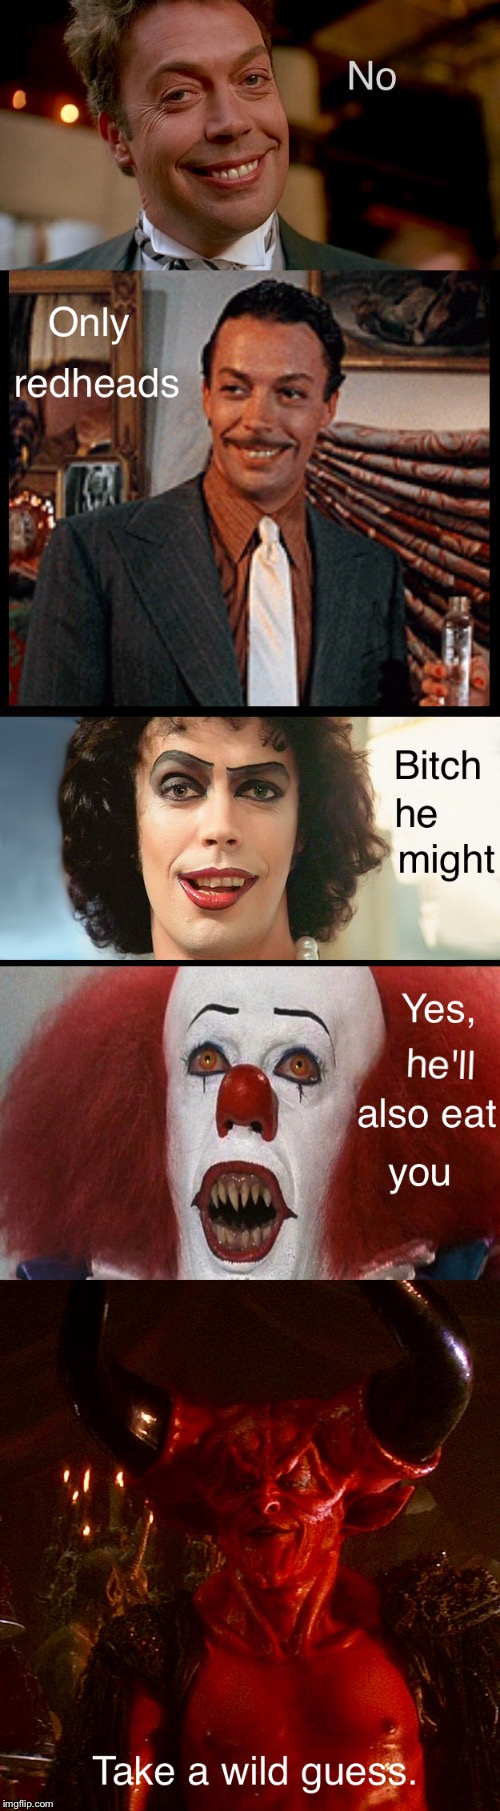 Will Tim Curry kill you? | image tagged in home alone 2,annie,rocky horror picture show,it,legend,tim curry | made w/ Imgflip meme maker